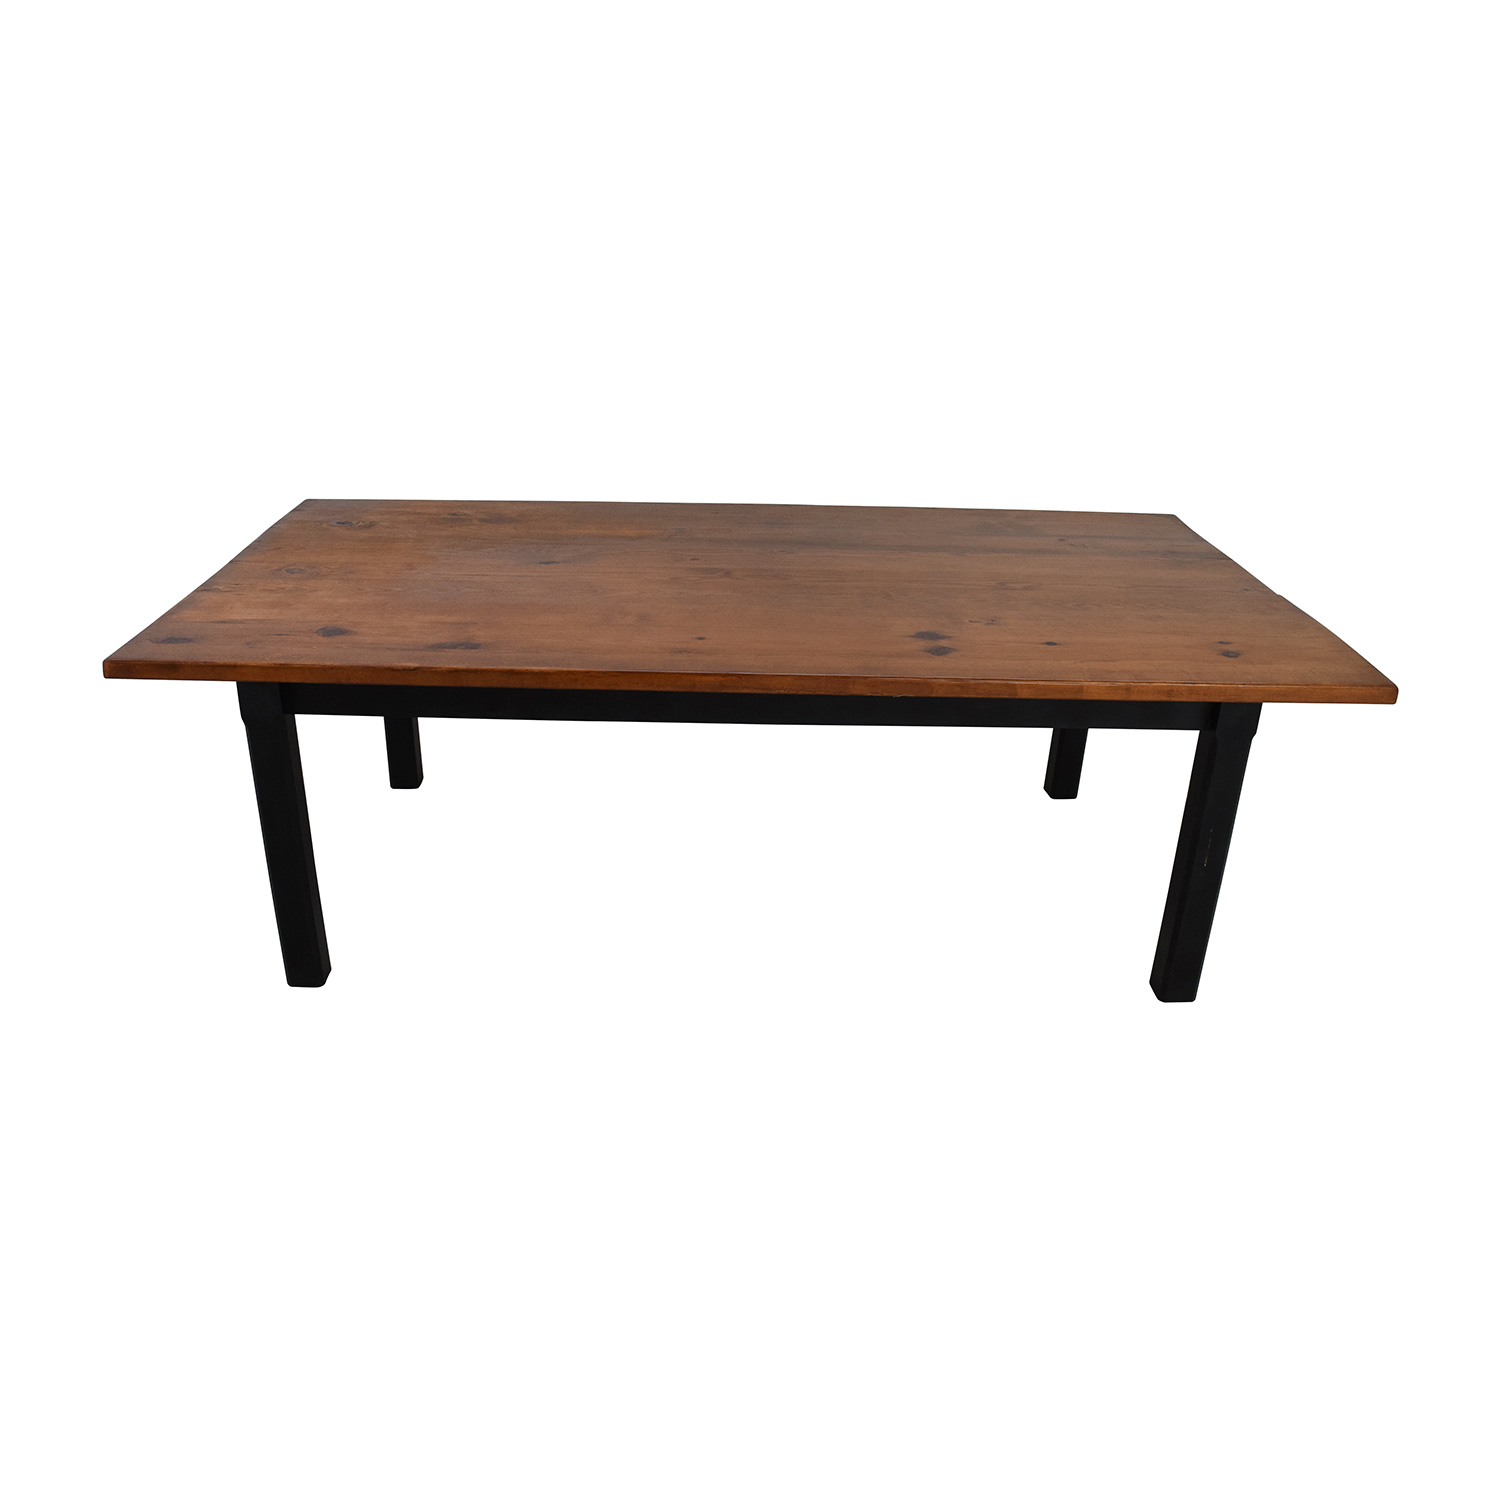 Buy American Antique 1890 Circa Walnut Dining Room Table